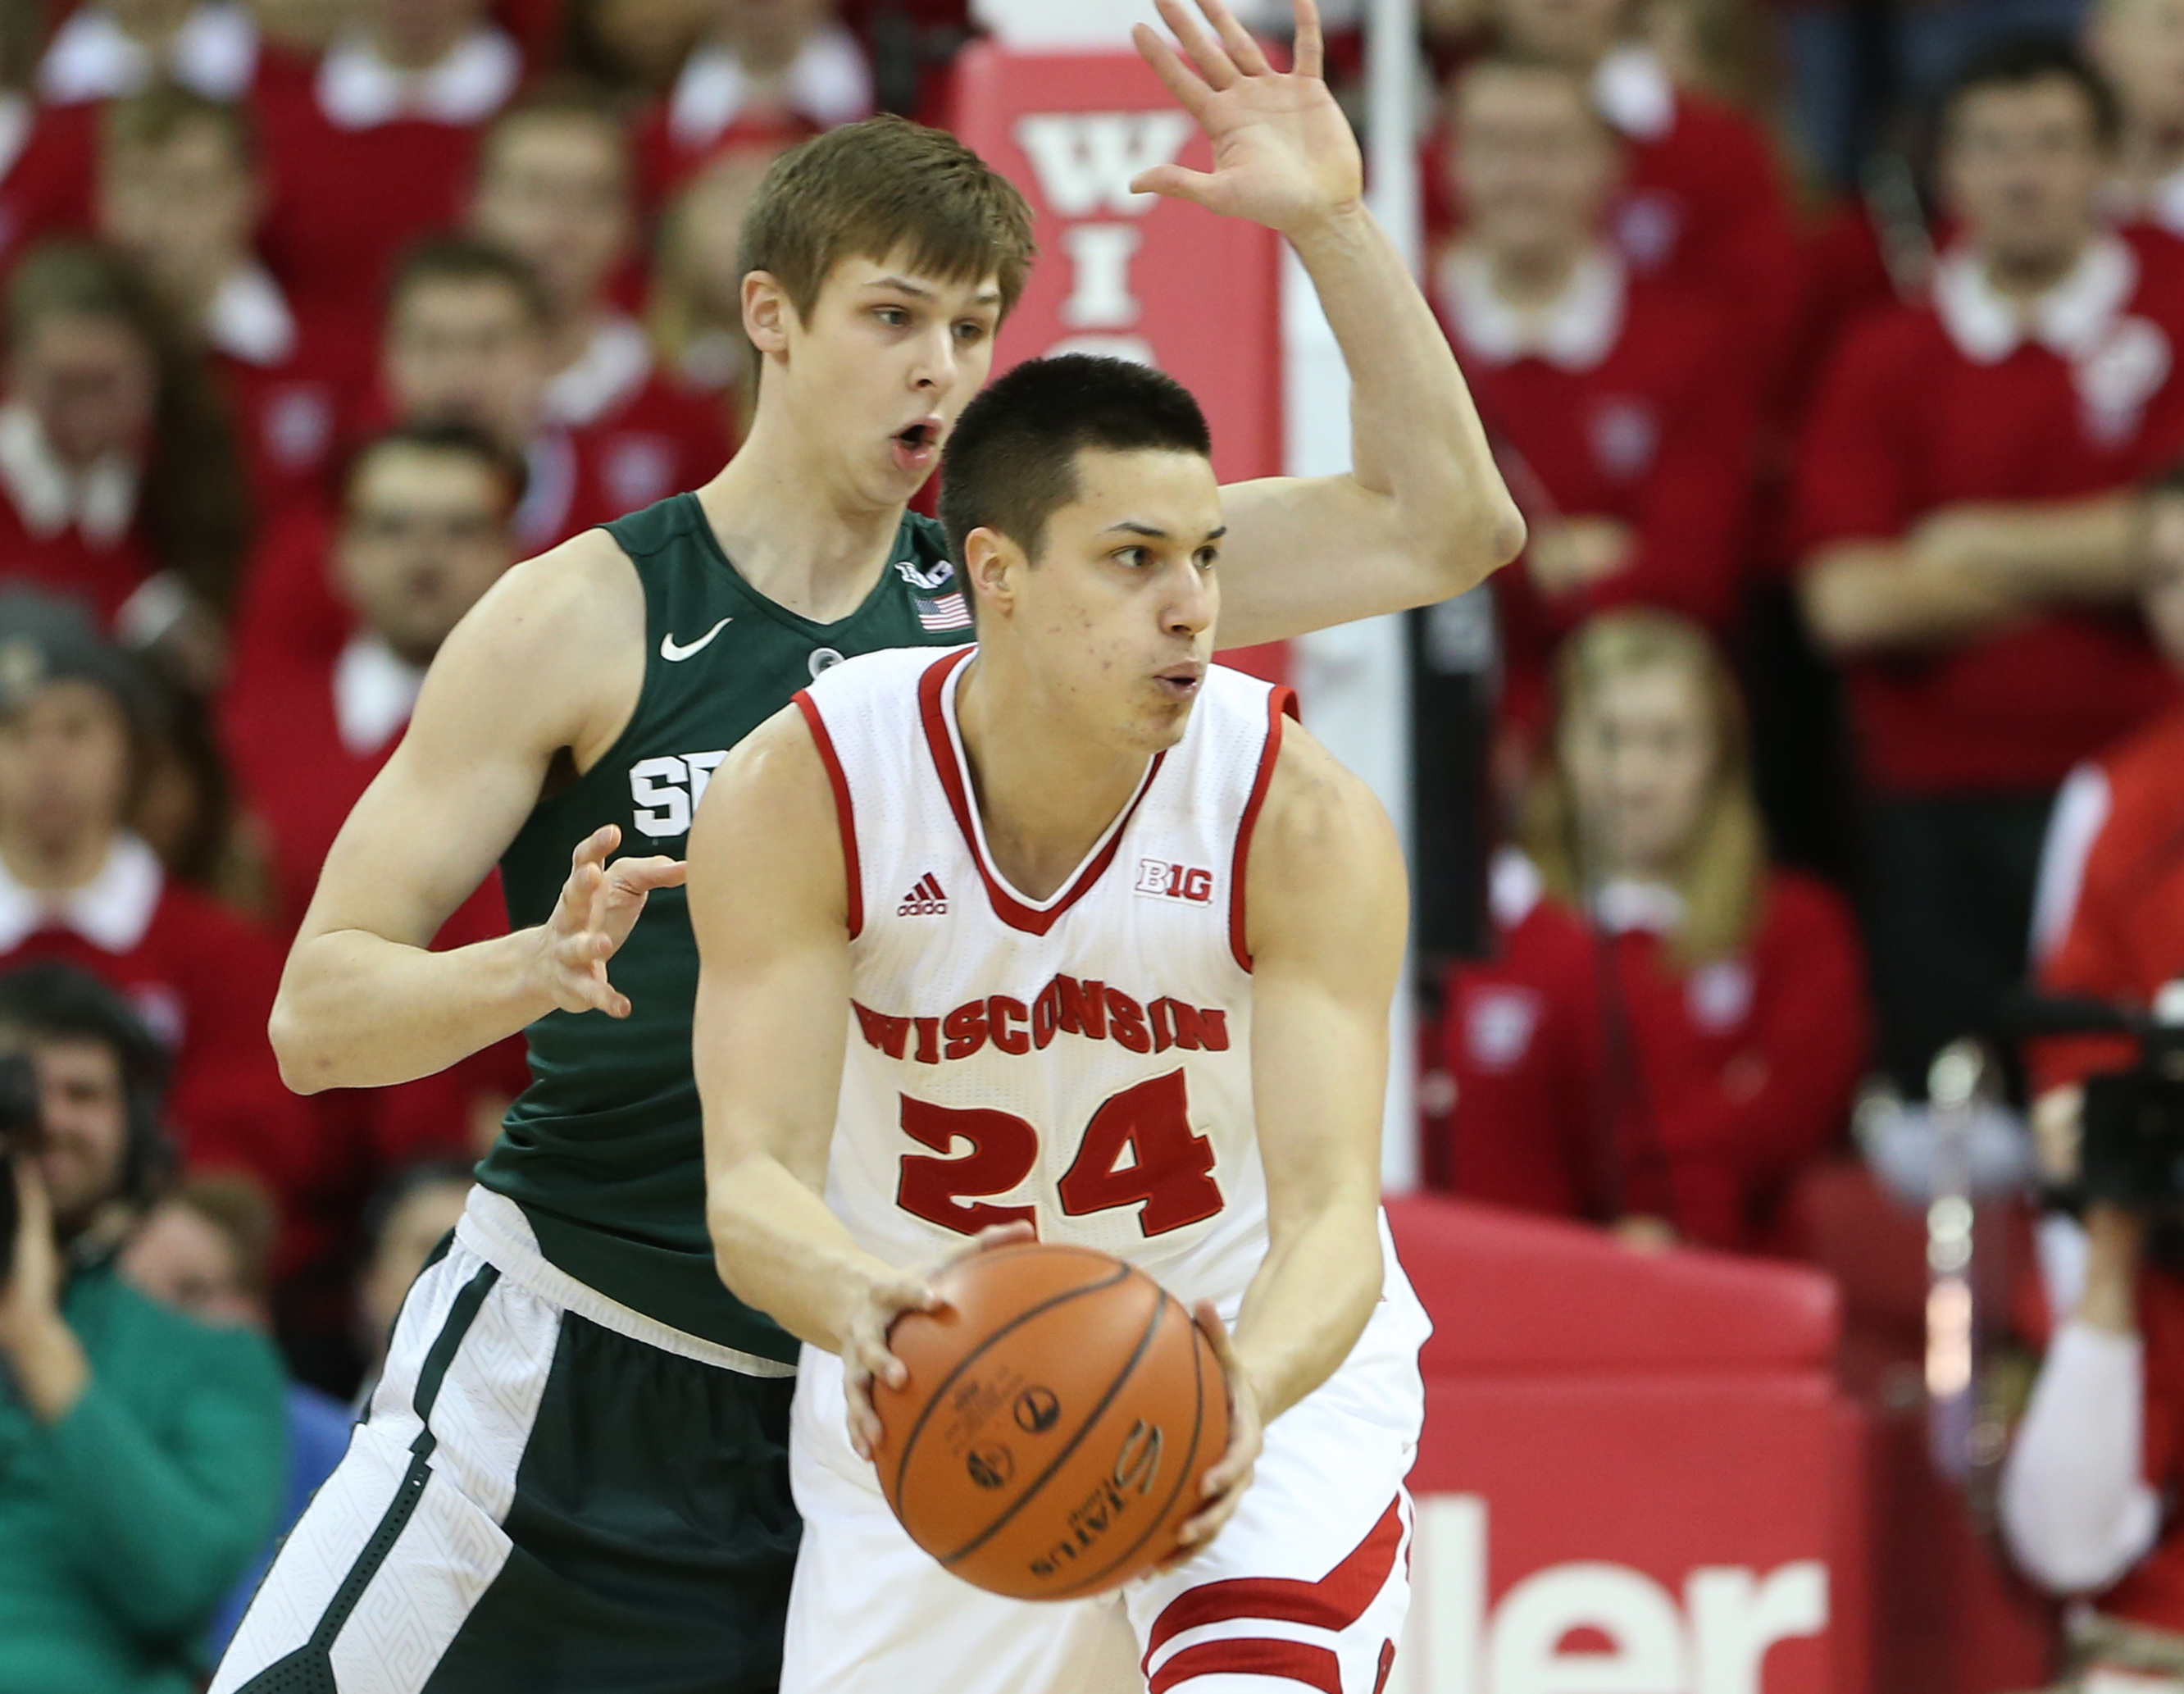 Jan 17, 2016; Madison, WI, USA; Wisconsin Badgers guard Bronson Koenig (24) looks to pass as Michigan State Spartans guard Matt McQuaid (20) defends. Wisconsin defeated Michigan State 77-76 at the Kohl Center. Mandatory Credit: Mary Langenfeld-USA TODAY Sports